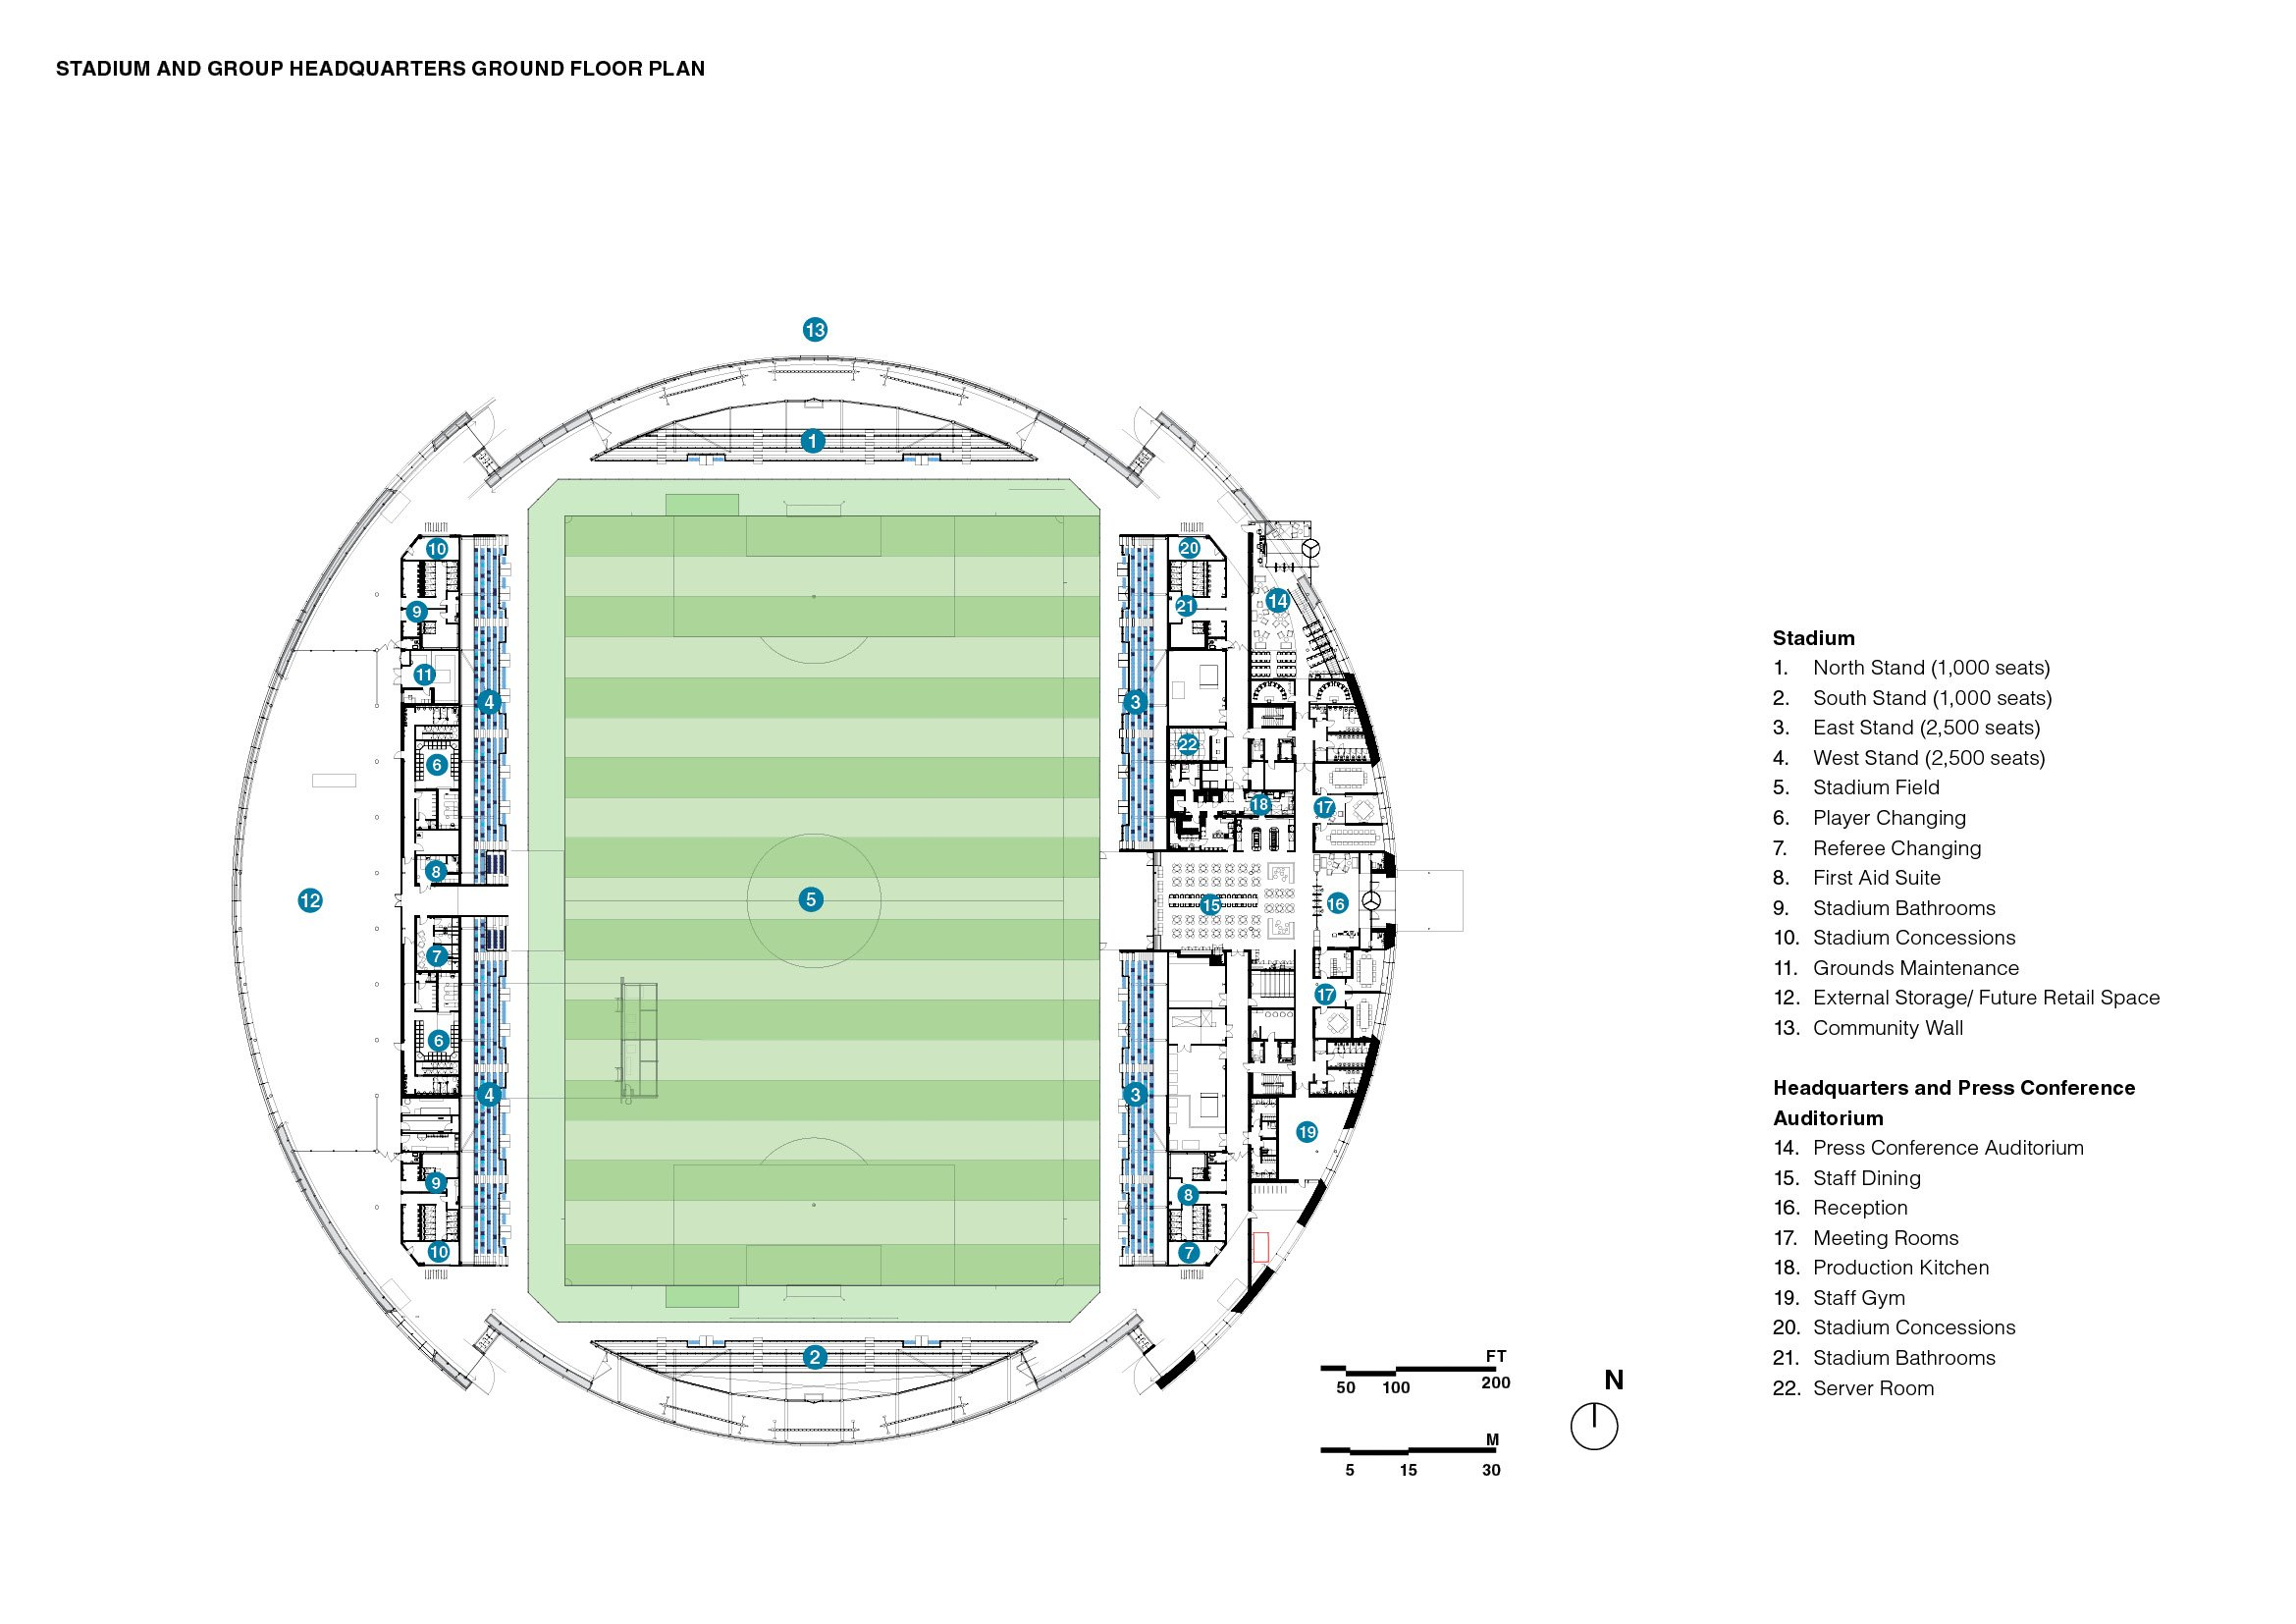 Stadium and Club Headquarters ground floor plan }